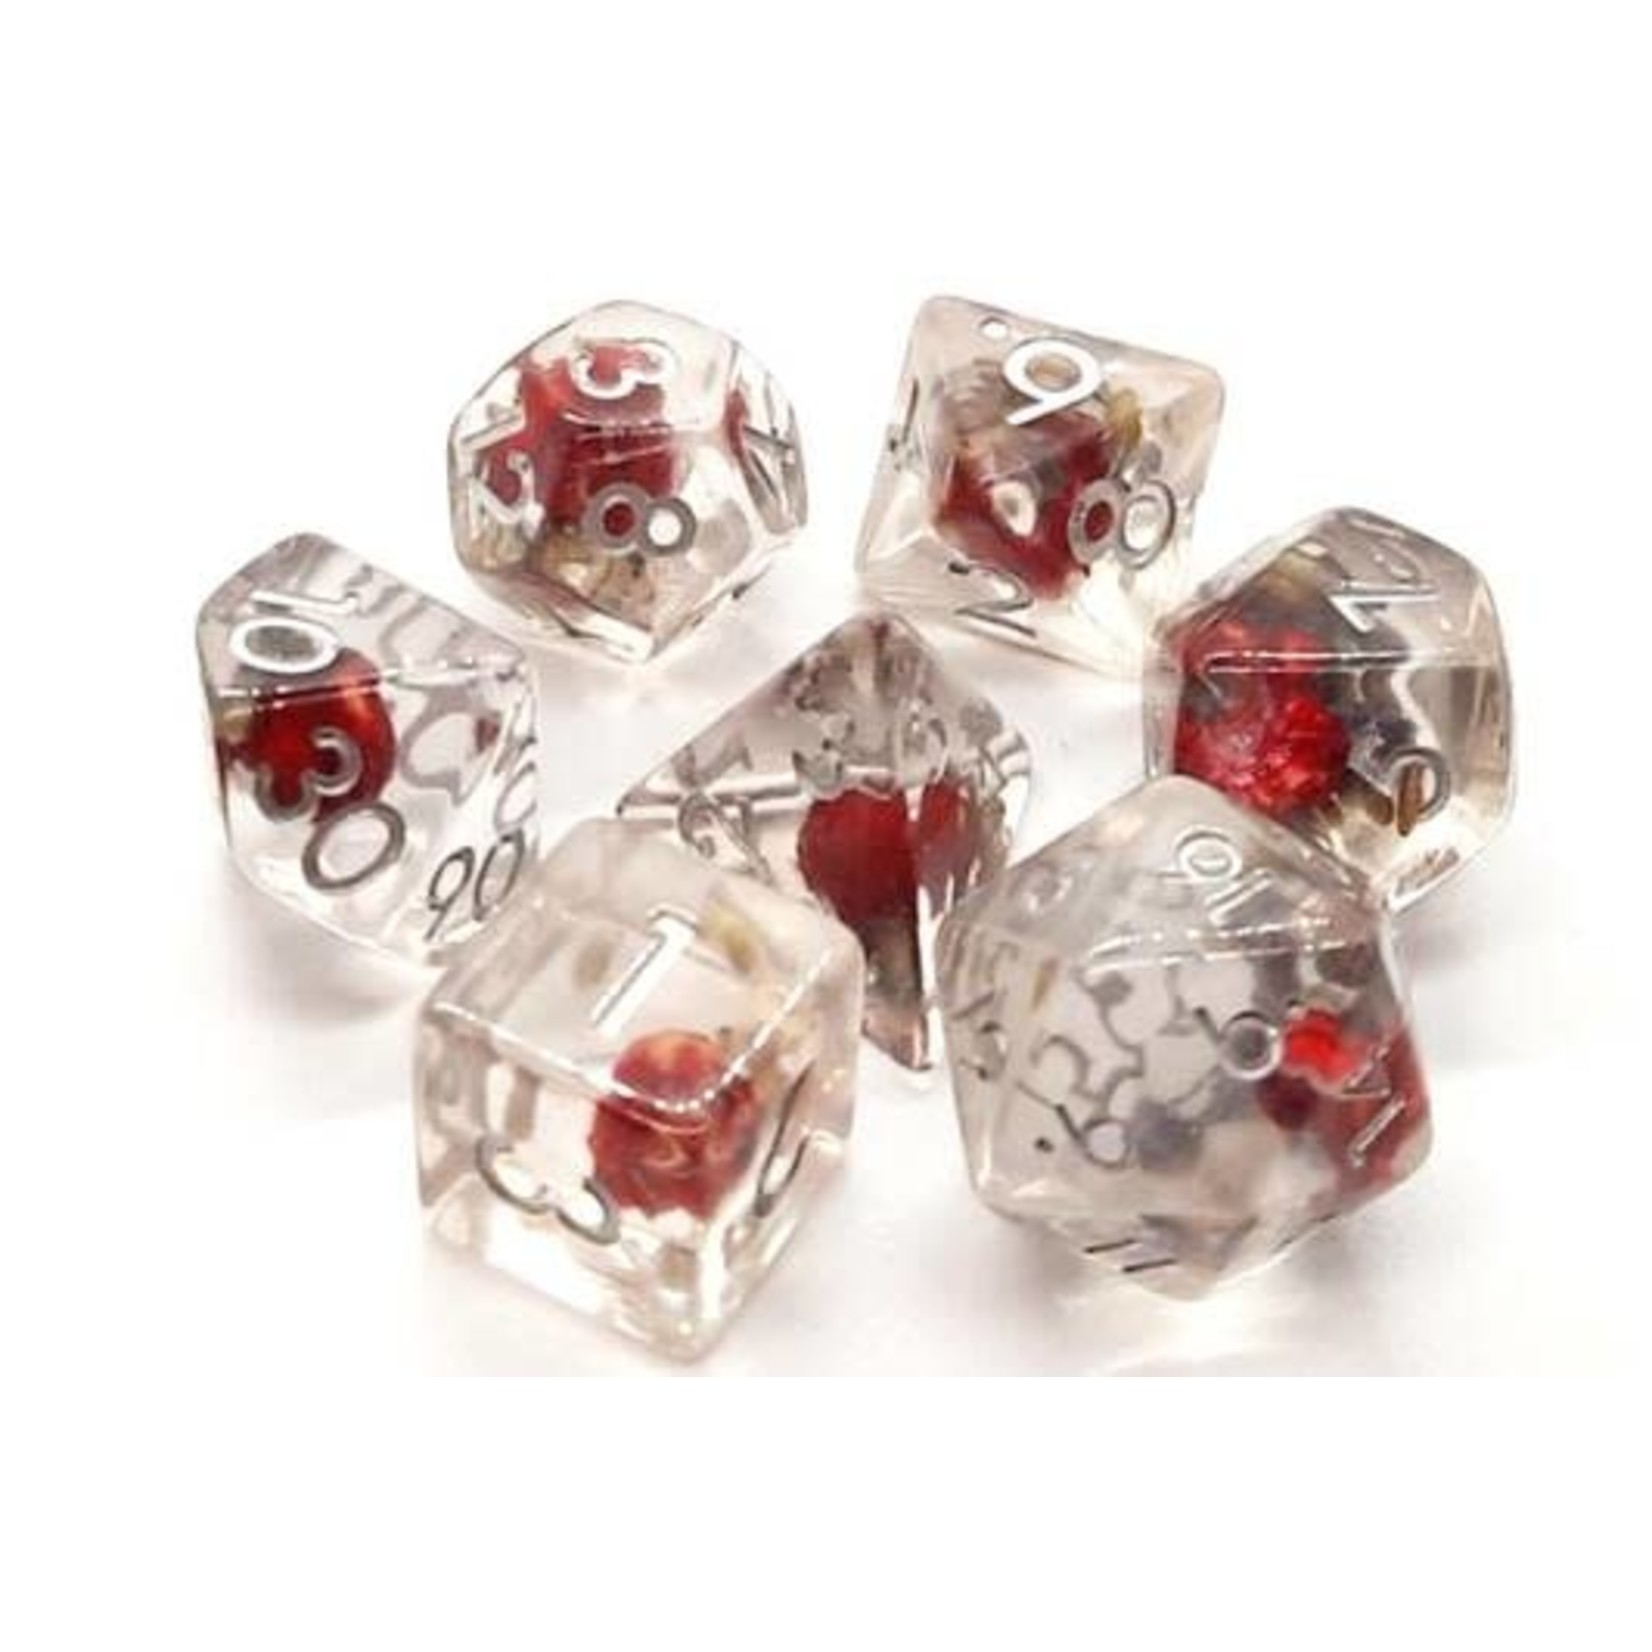 Old School 7 Piece Dice Set: Infused - Red Flower